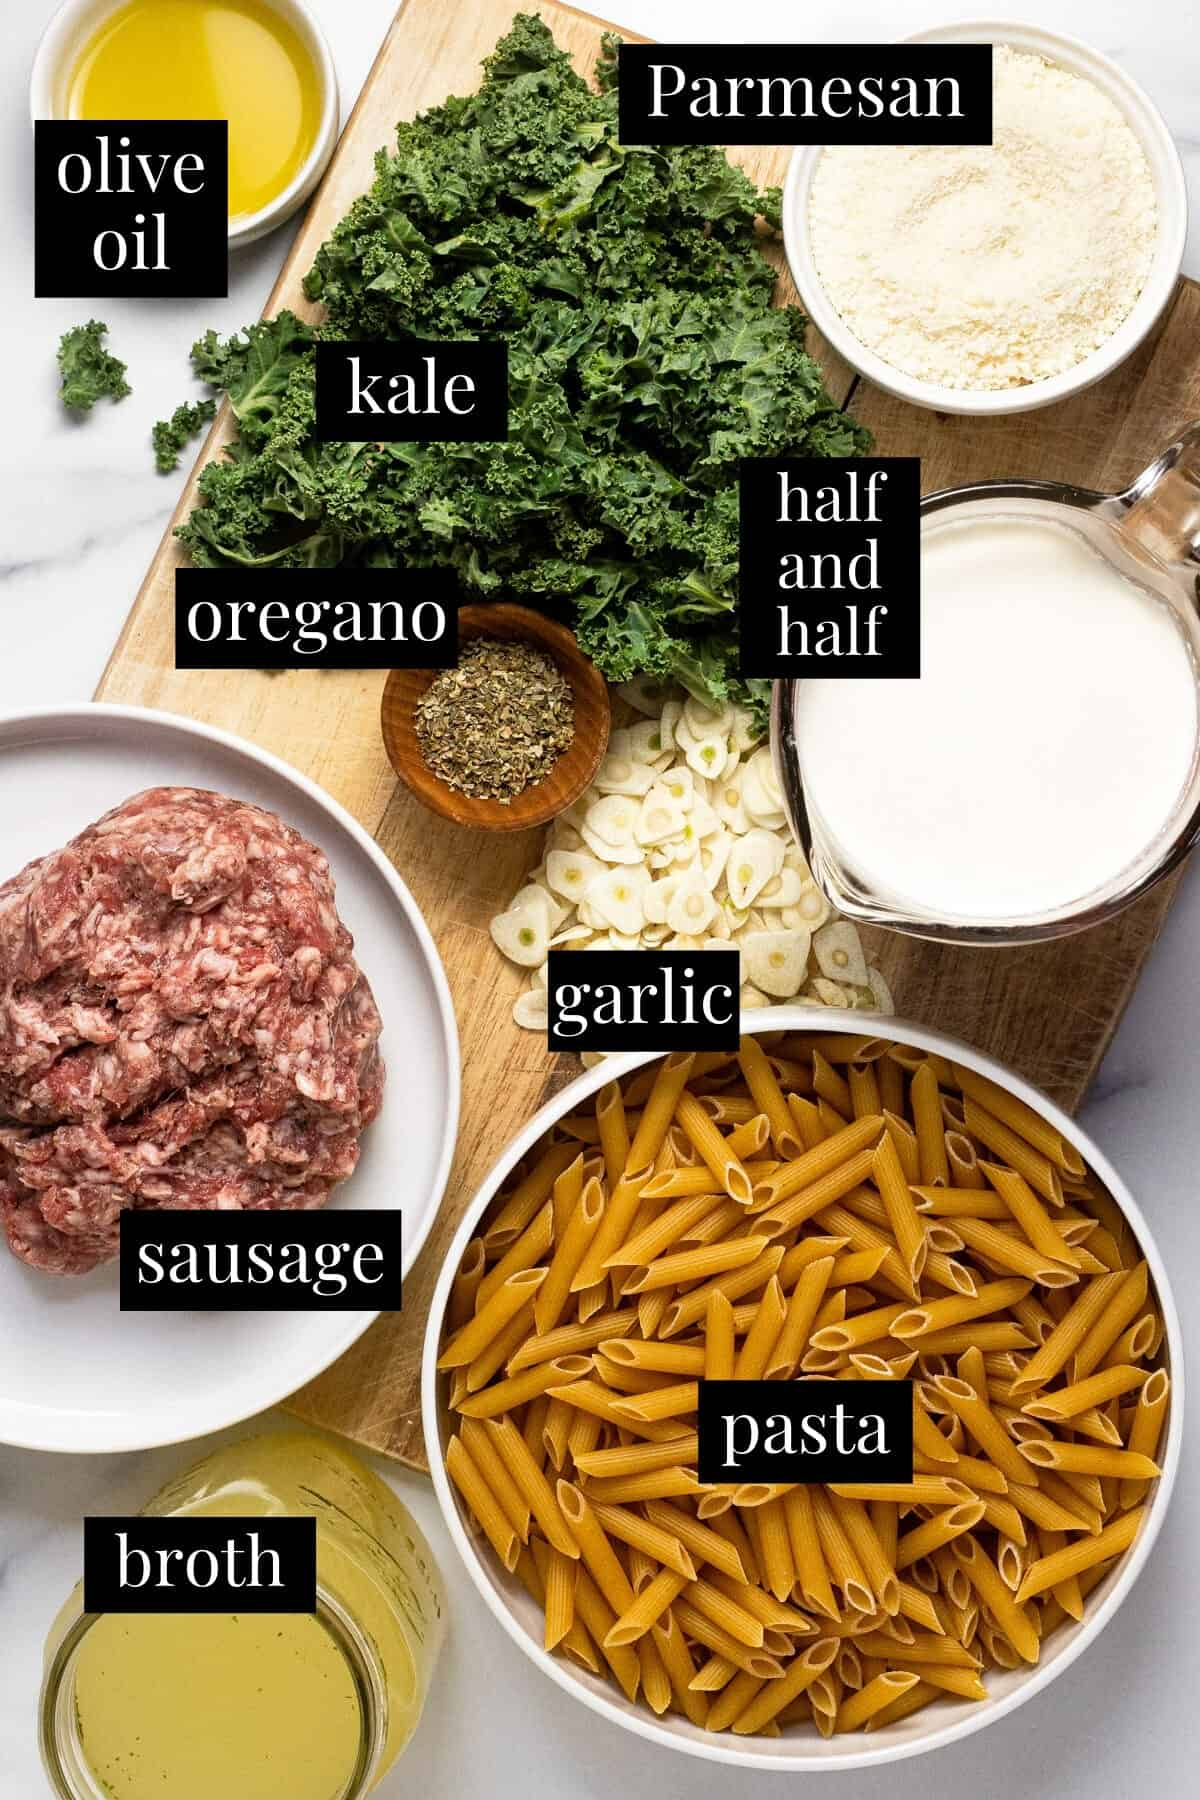 White marble counter top with ingredients to make sausage kale pasta